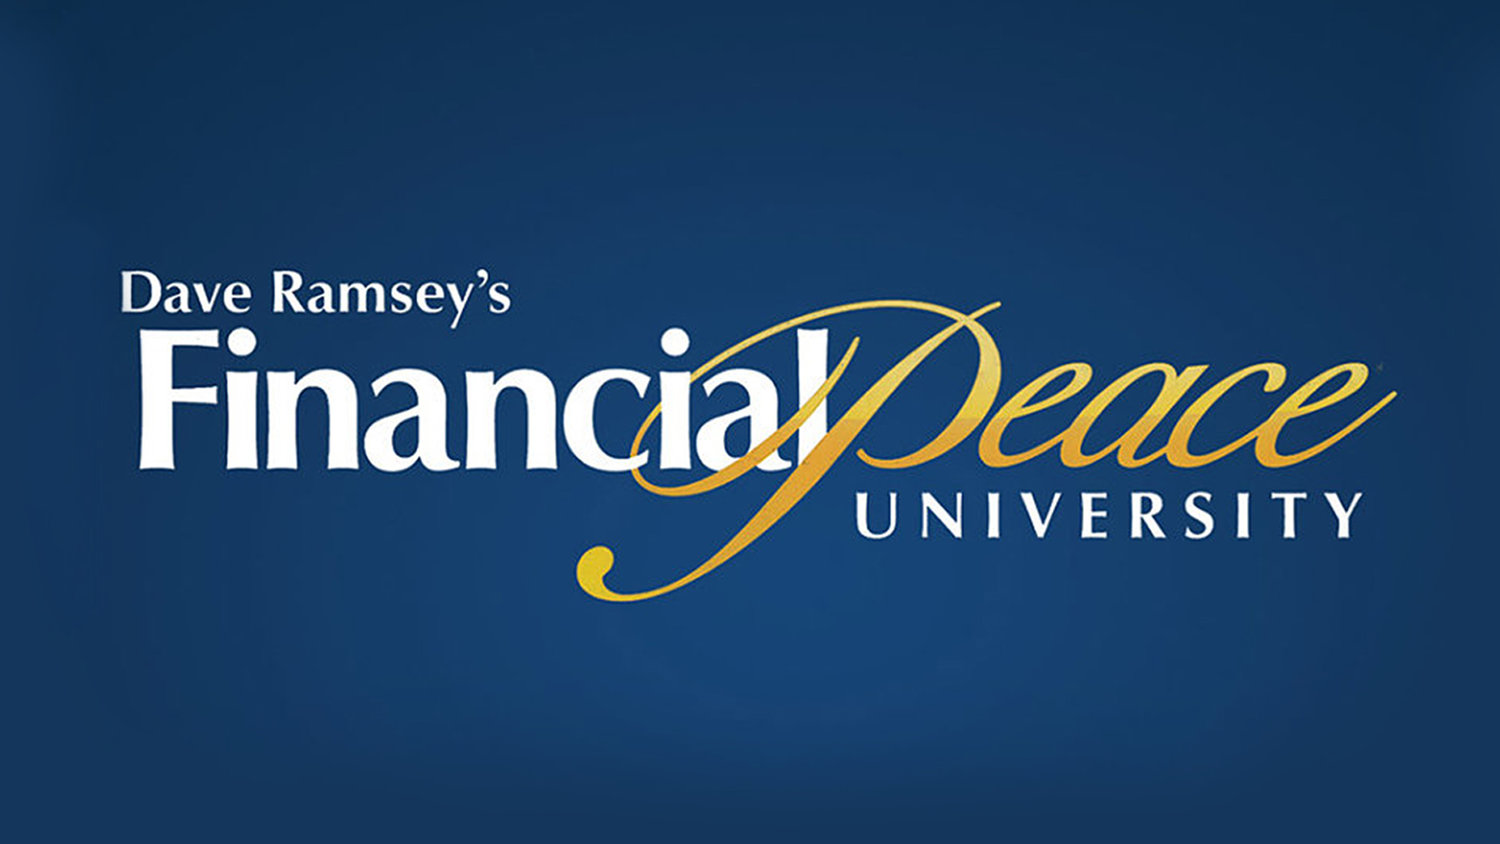 FINANCIAL PEACE UNIV. - We offer classes statewide with the goal of helping Rhode Islanders pay off personal debt.